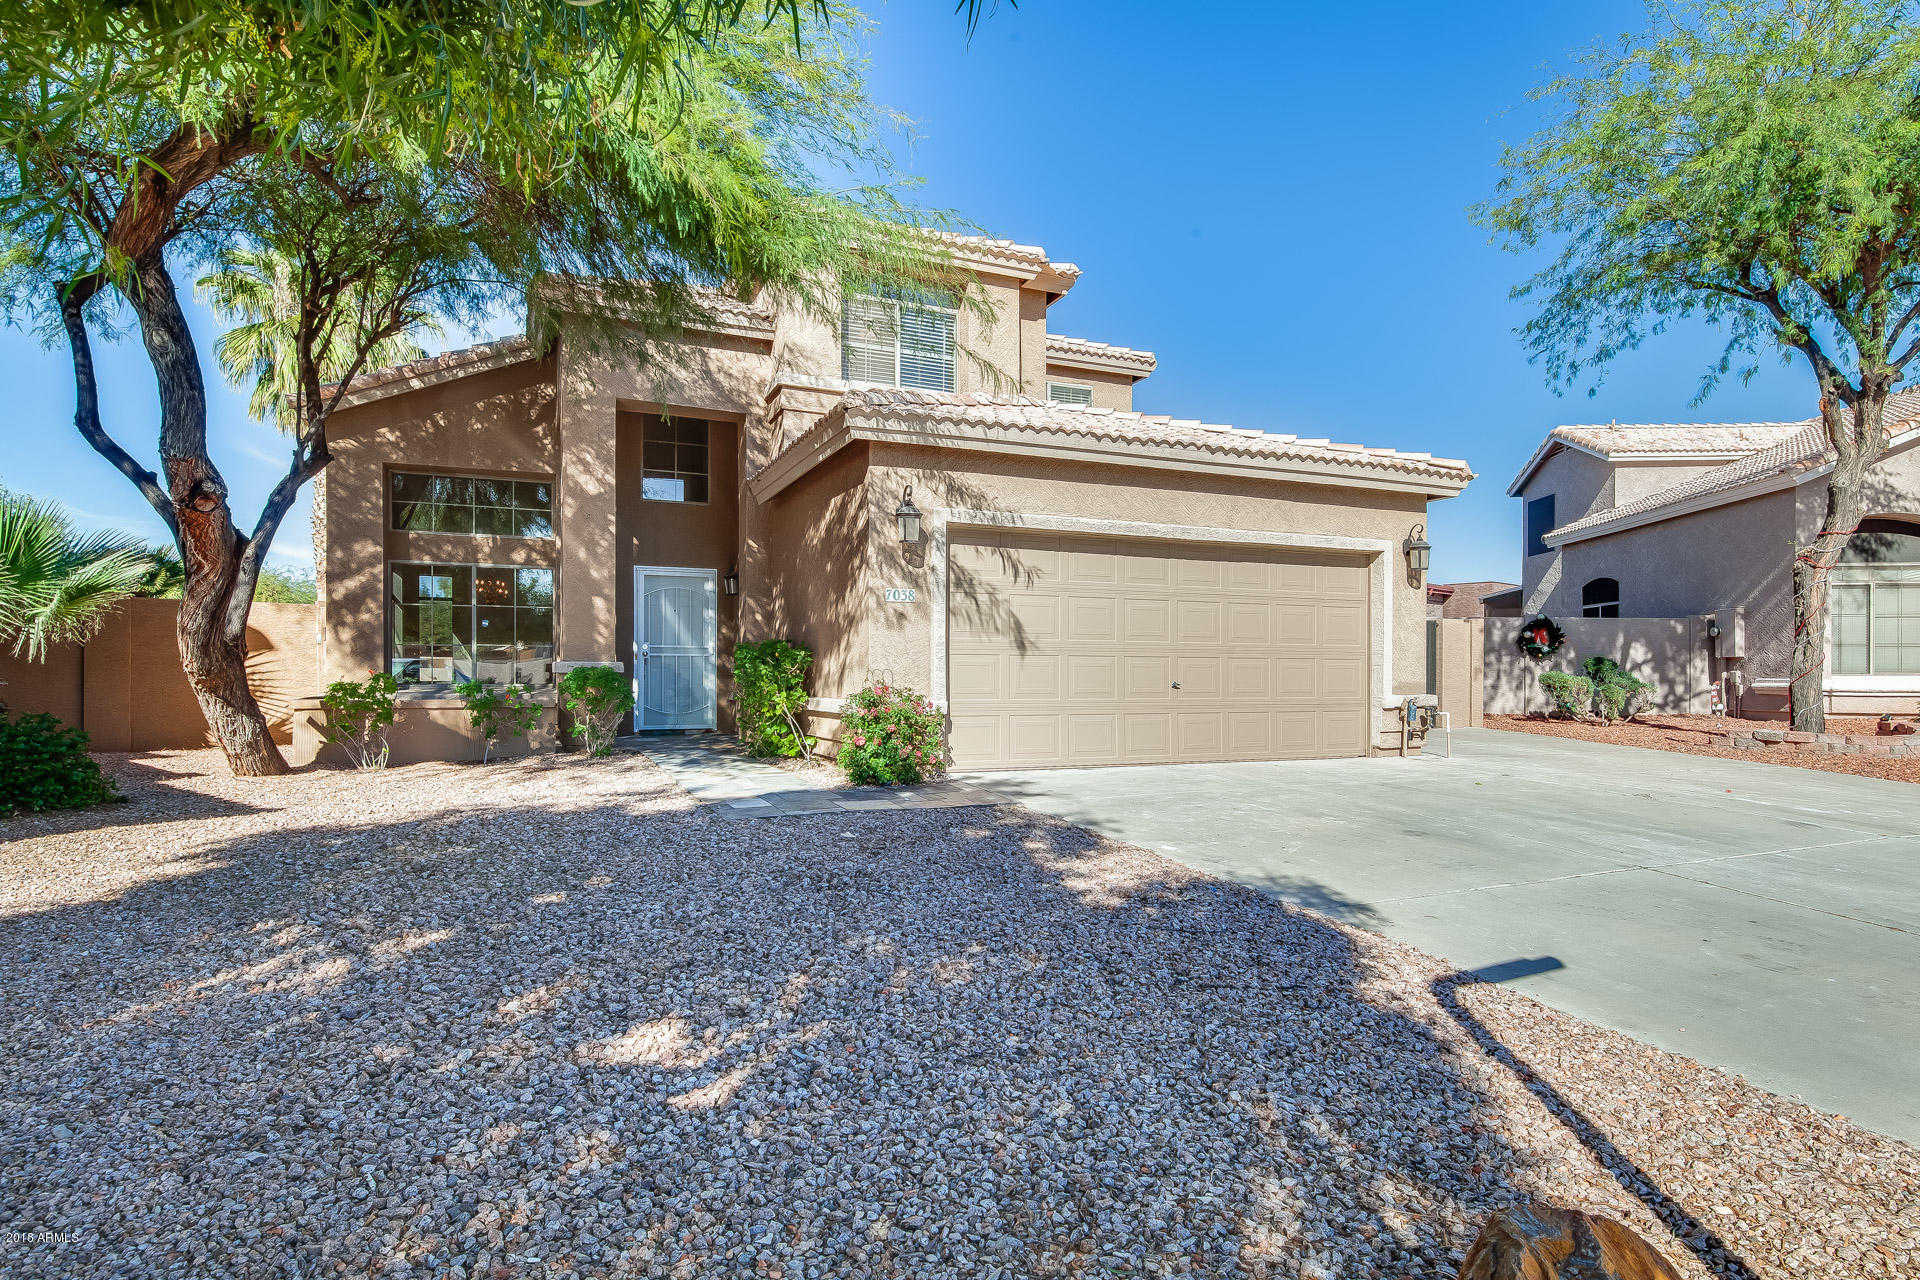 $323,900 - 4Br/3Ba - Home for Sale in Flora Cove, Glendale